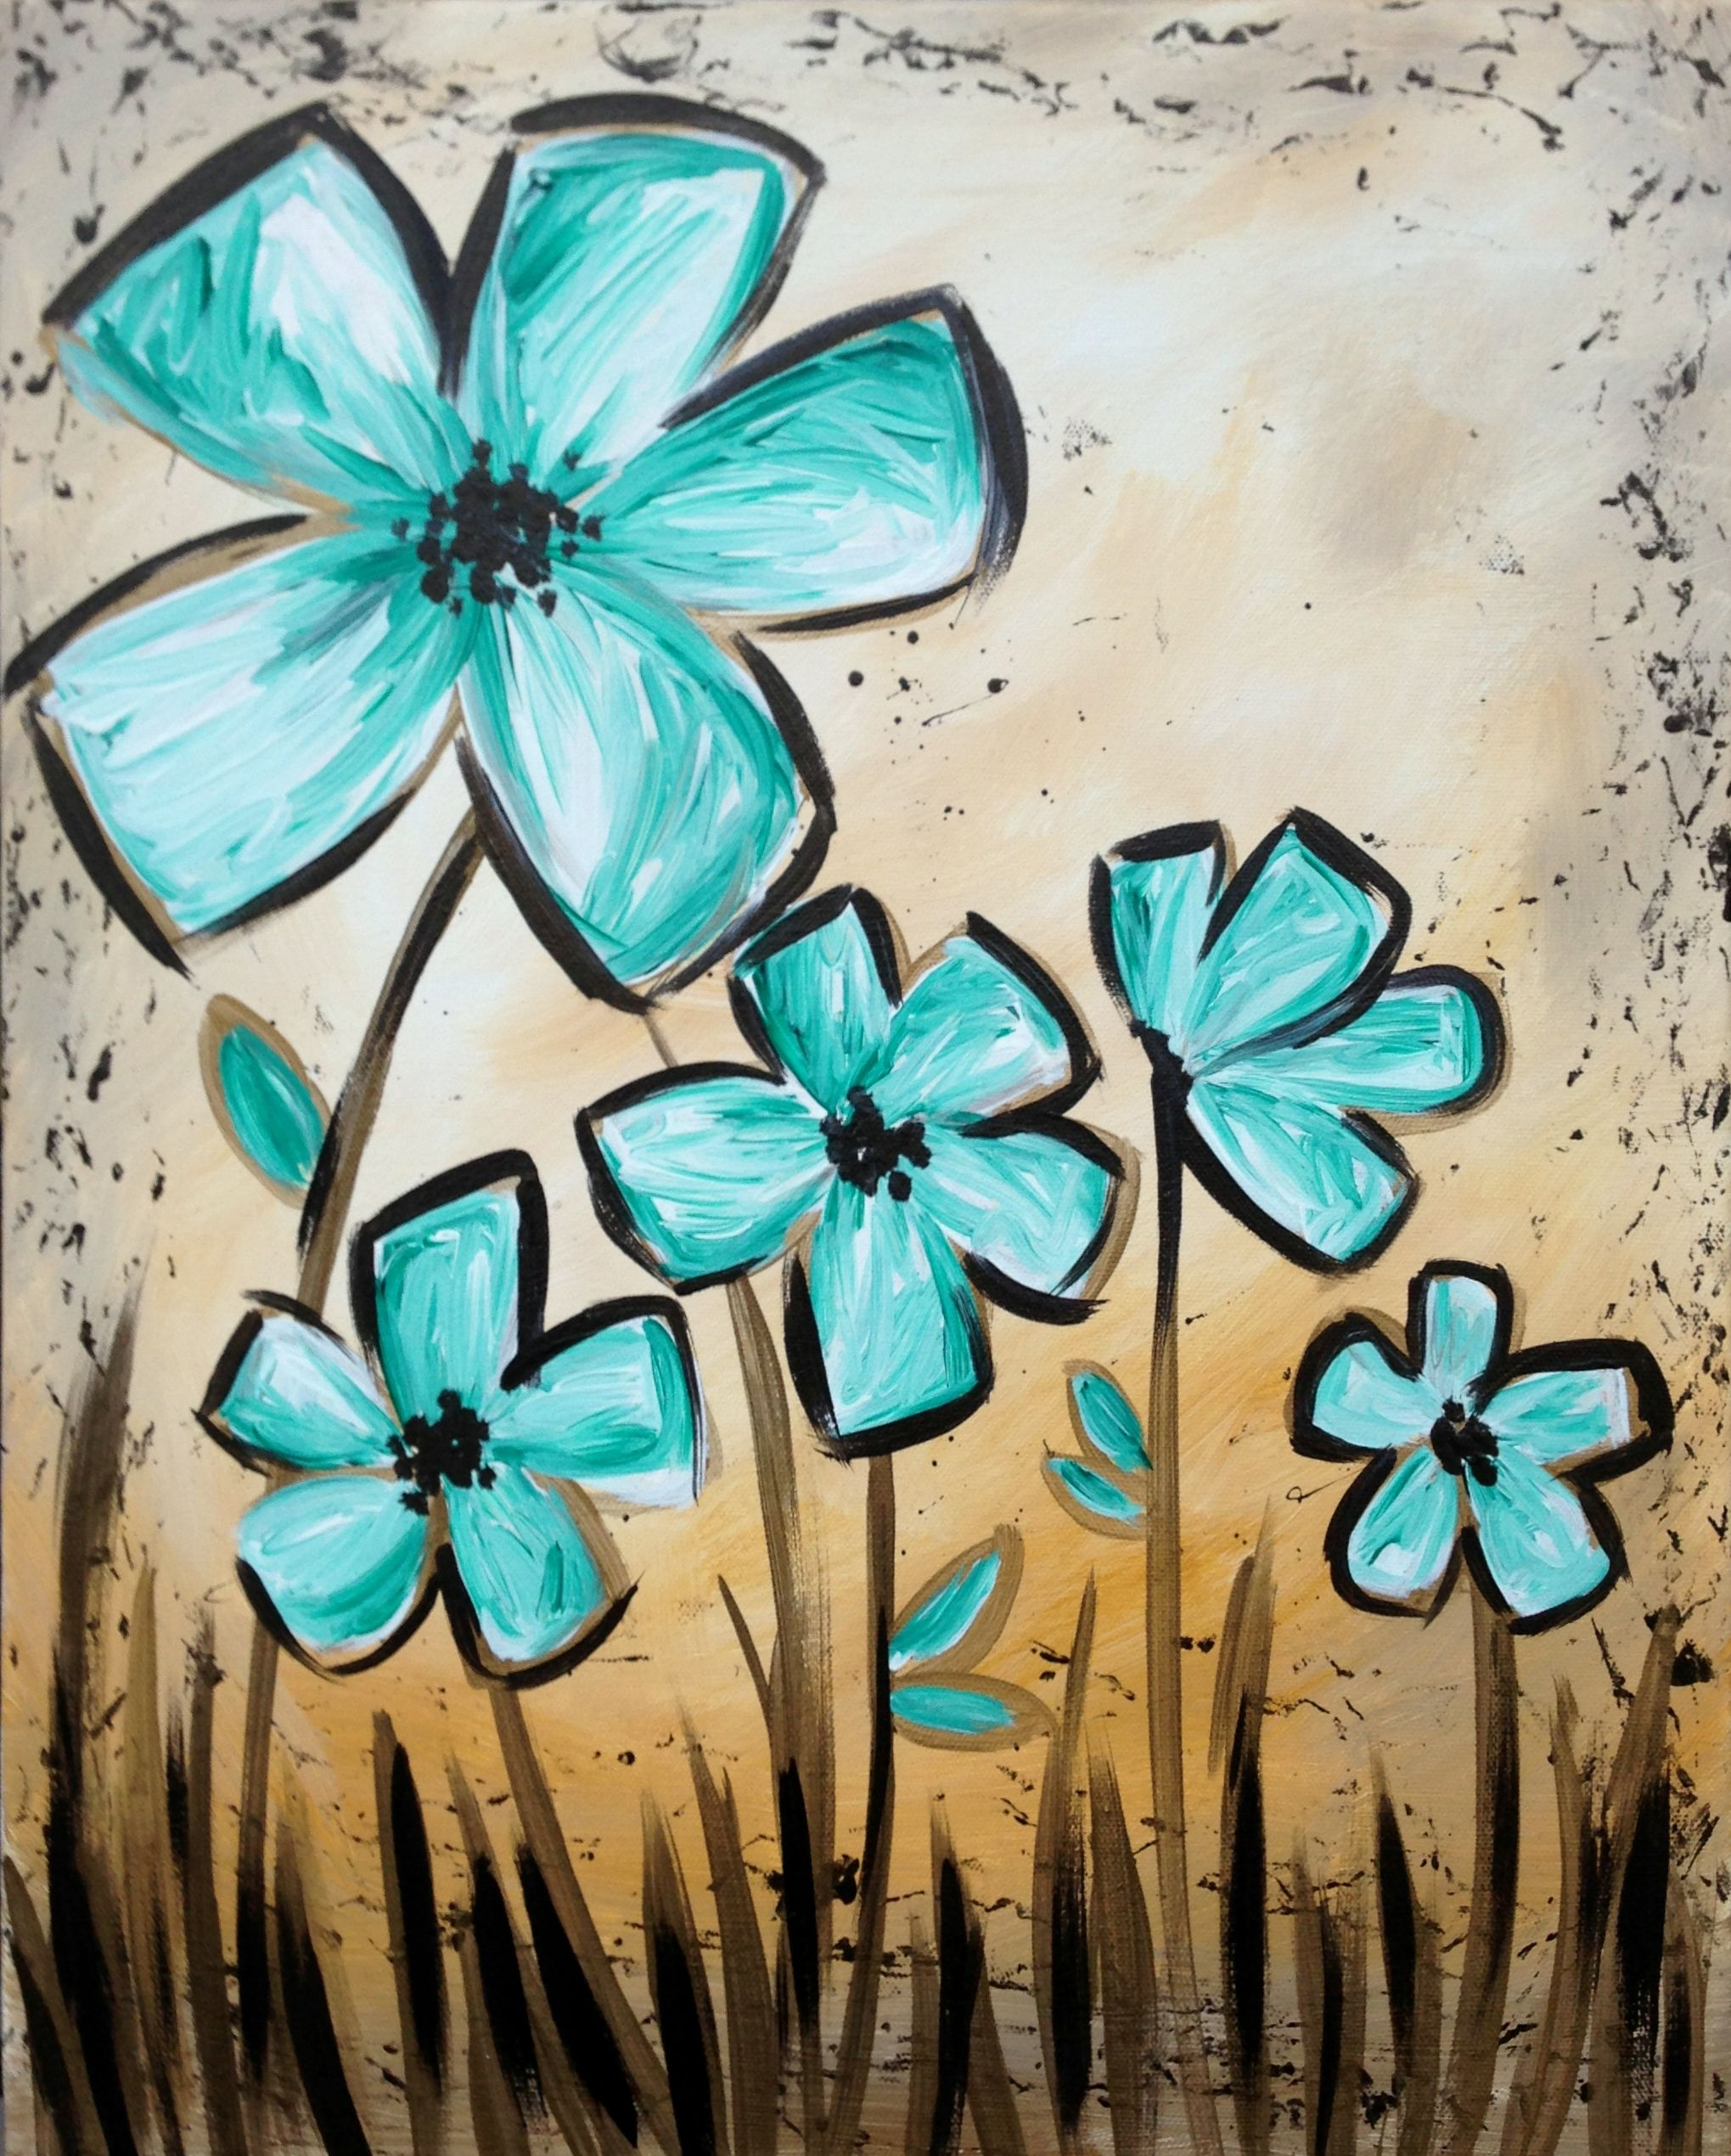 Rustic Canvas Painting Ideas Rustic Garden Large Painting Ideas